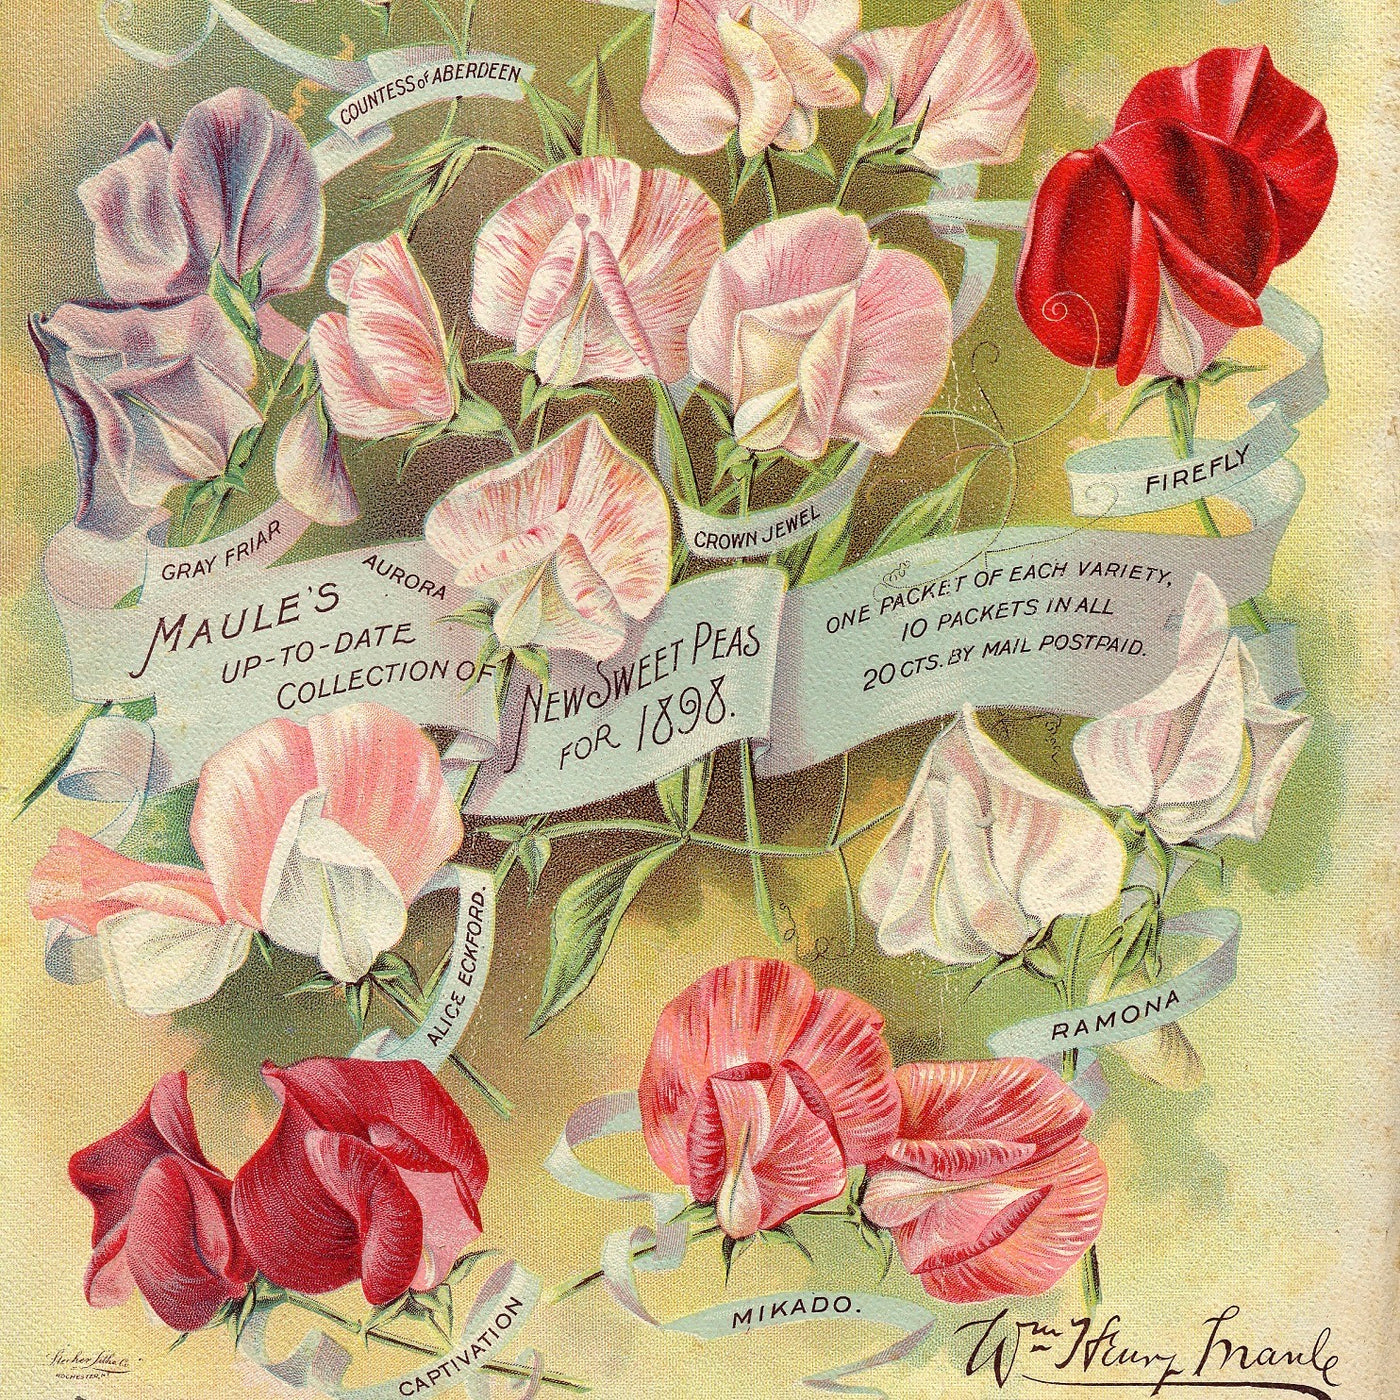 Puriri Lane | Maules Seed Catalogue | Vintage Sweet Peas